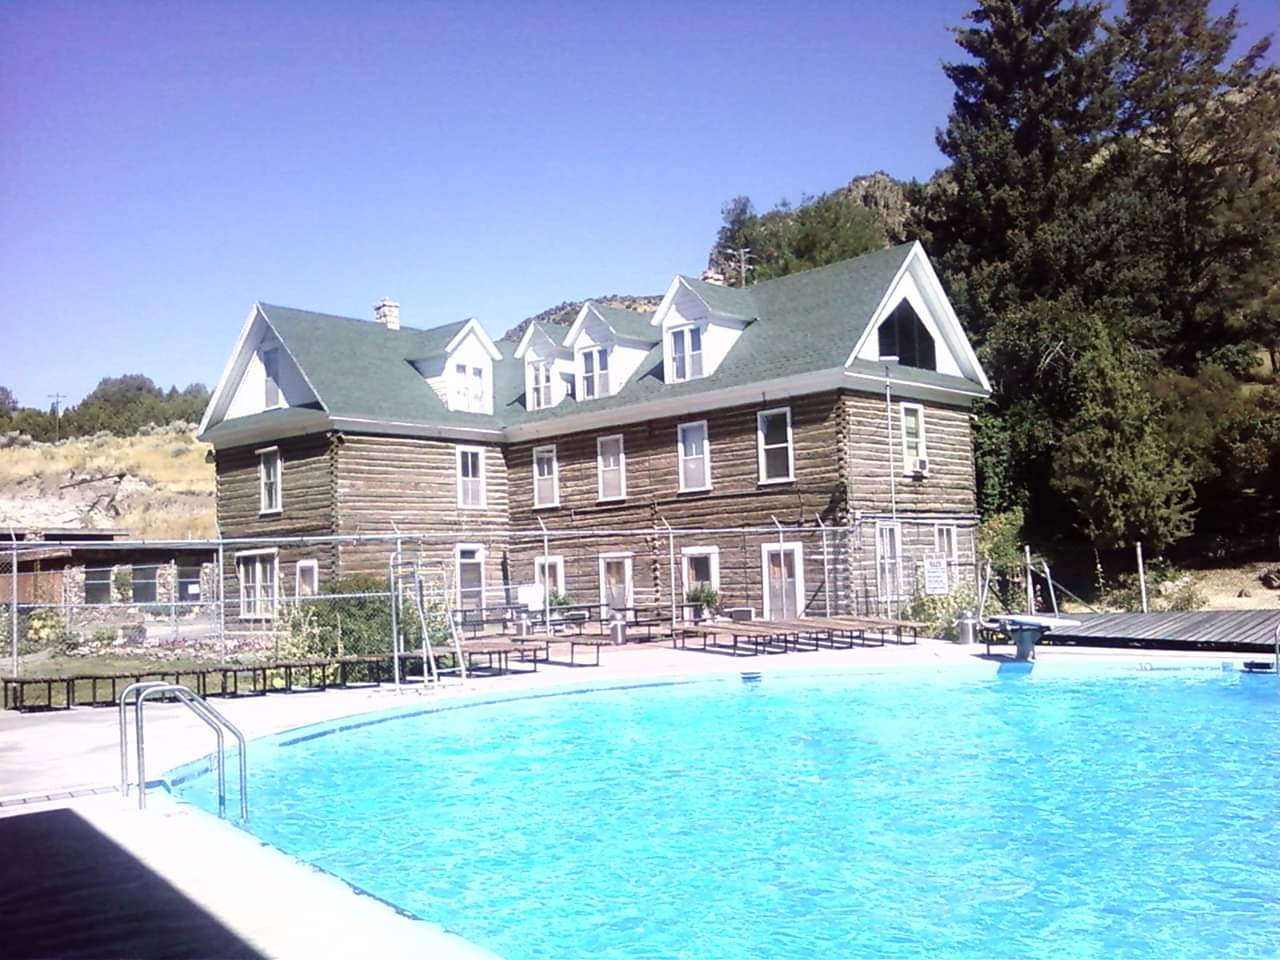 Heise Hot Springs - Where There is Something for Everyone